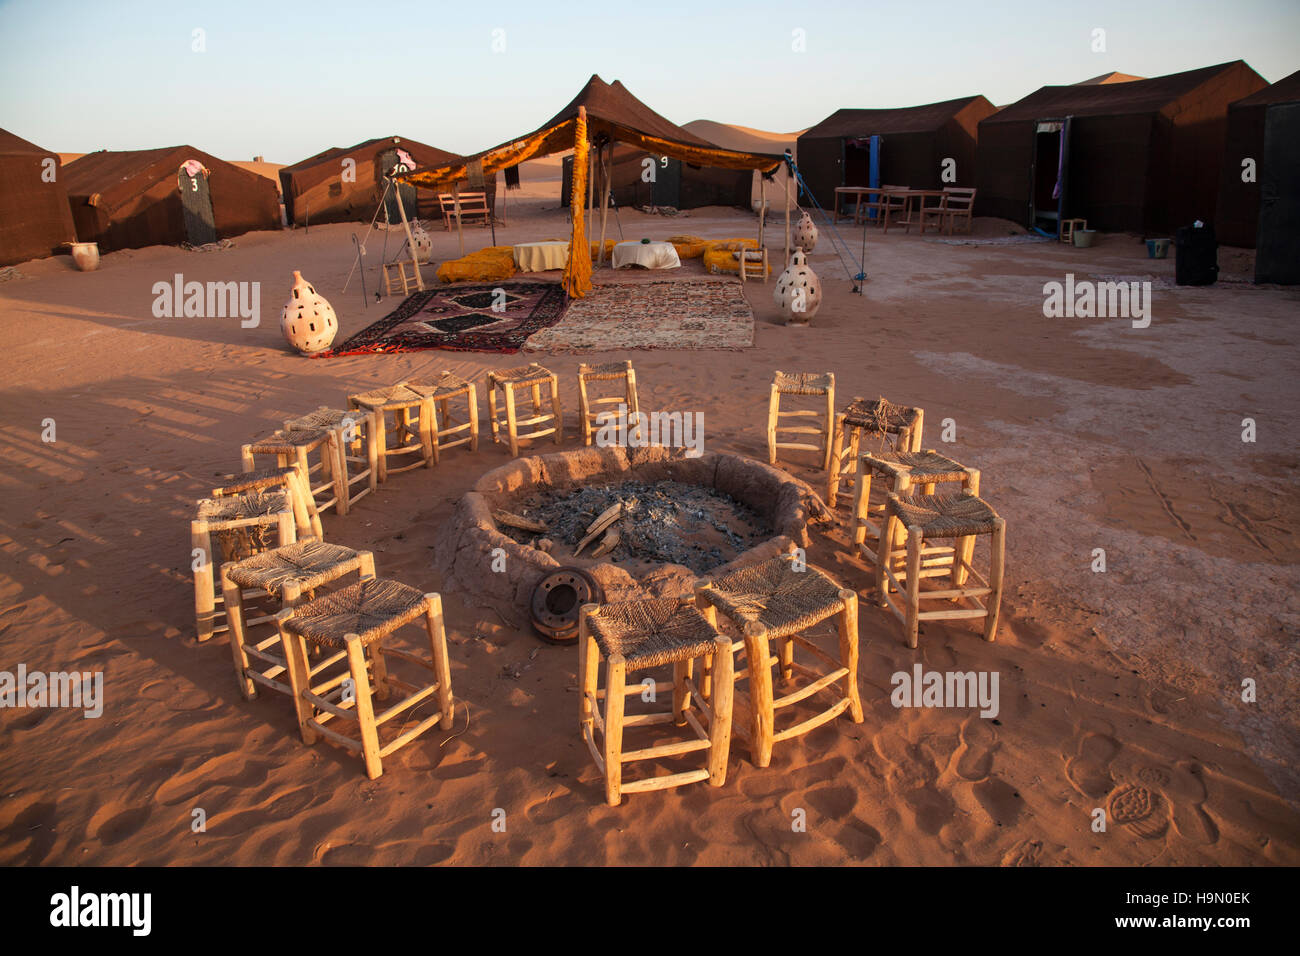 Campsite in the Sahara Desert, Morocco. - Stock Image